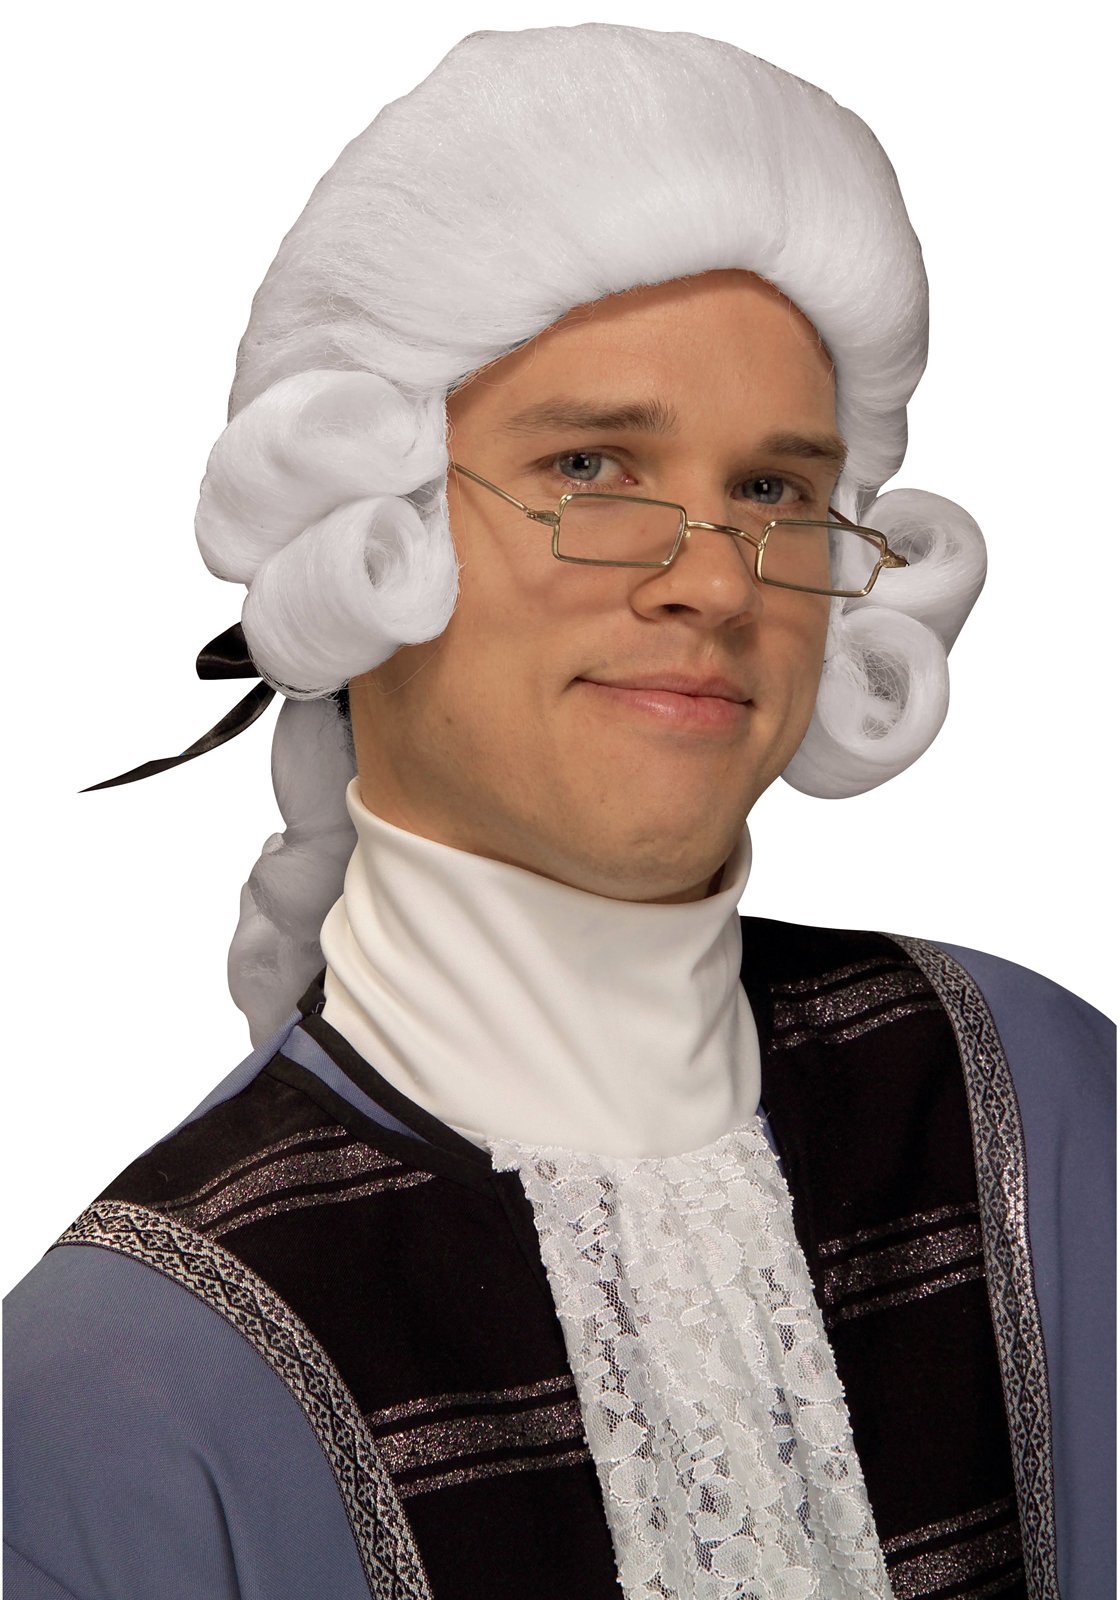 Men's Colonial Adult Wig (White)